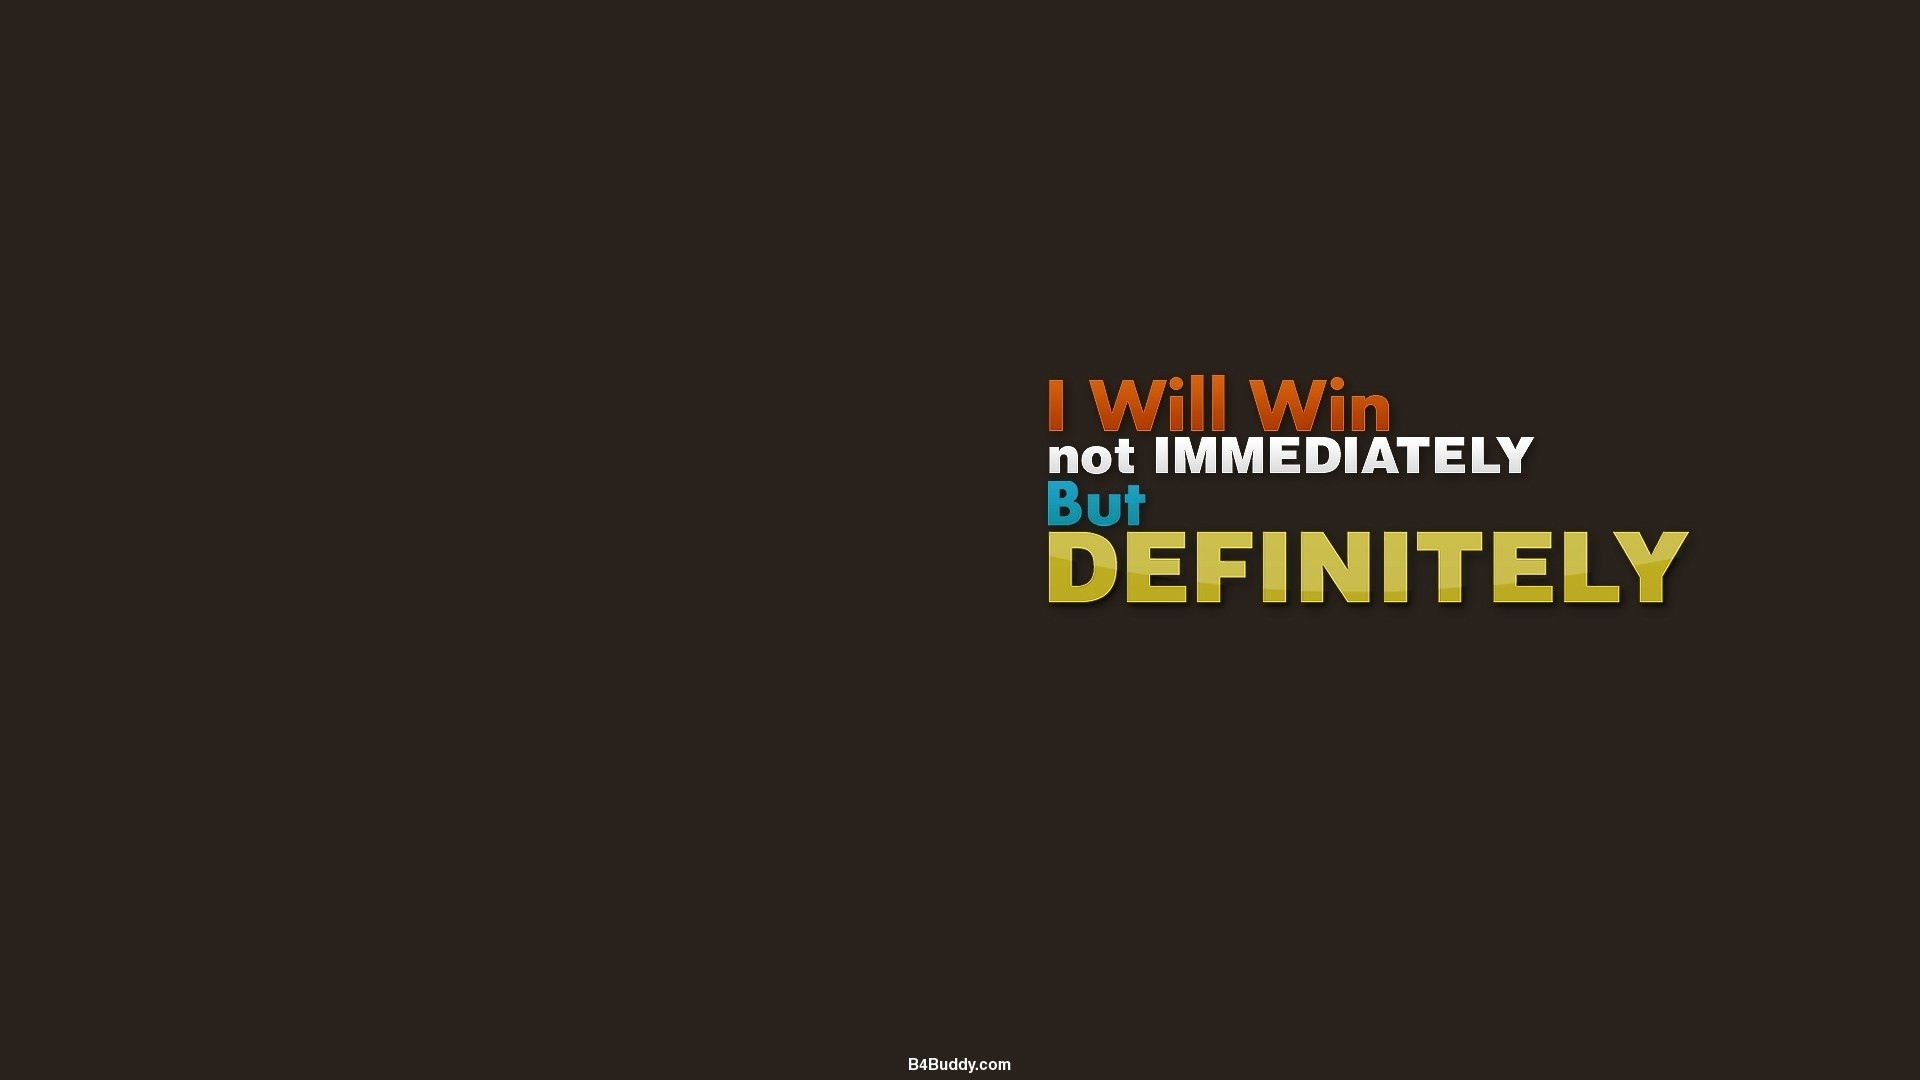 Wallpapers Motivational Quotes (12 Wallpapers)